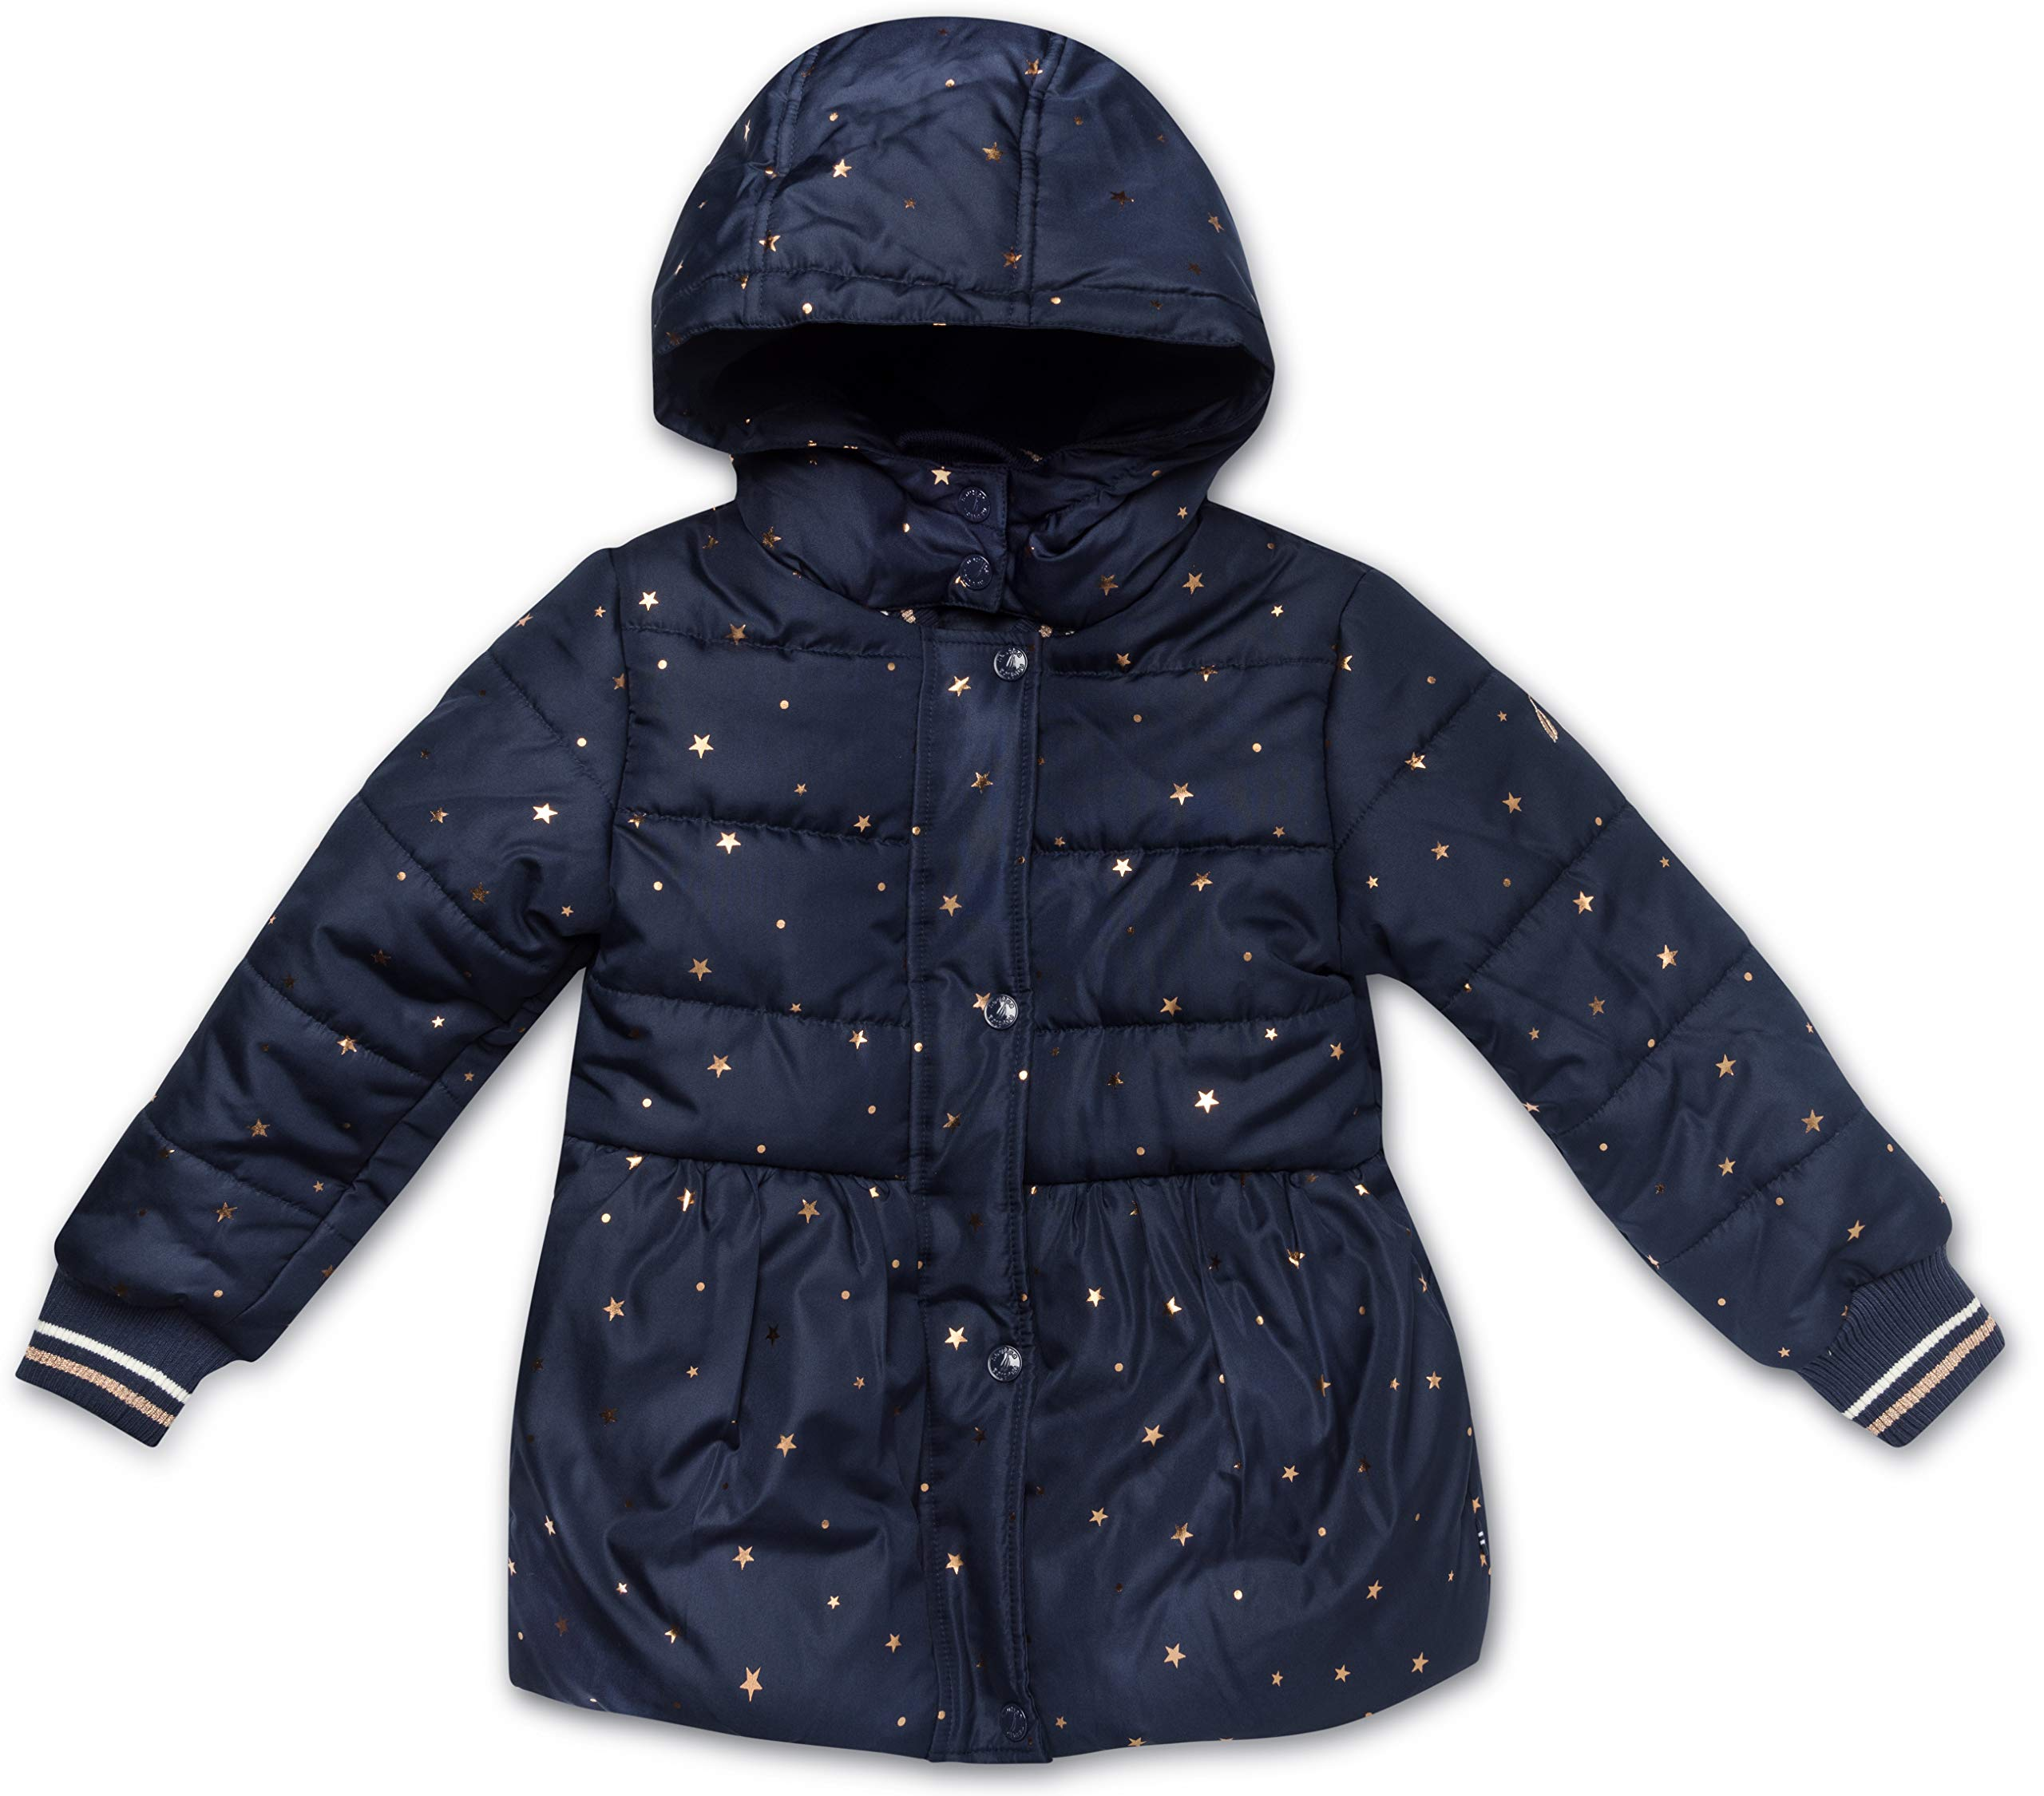 Nautica Girls' Little Puffer Coat with Removable Hood, Navy, 6 by Nautica